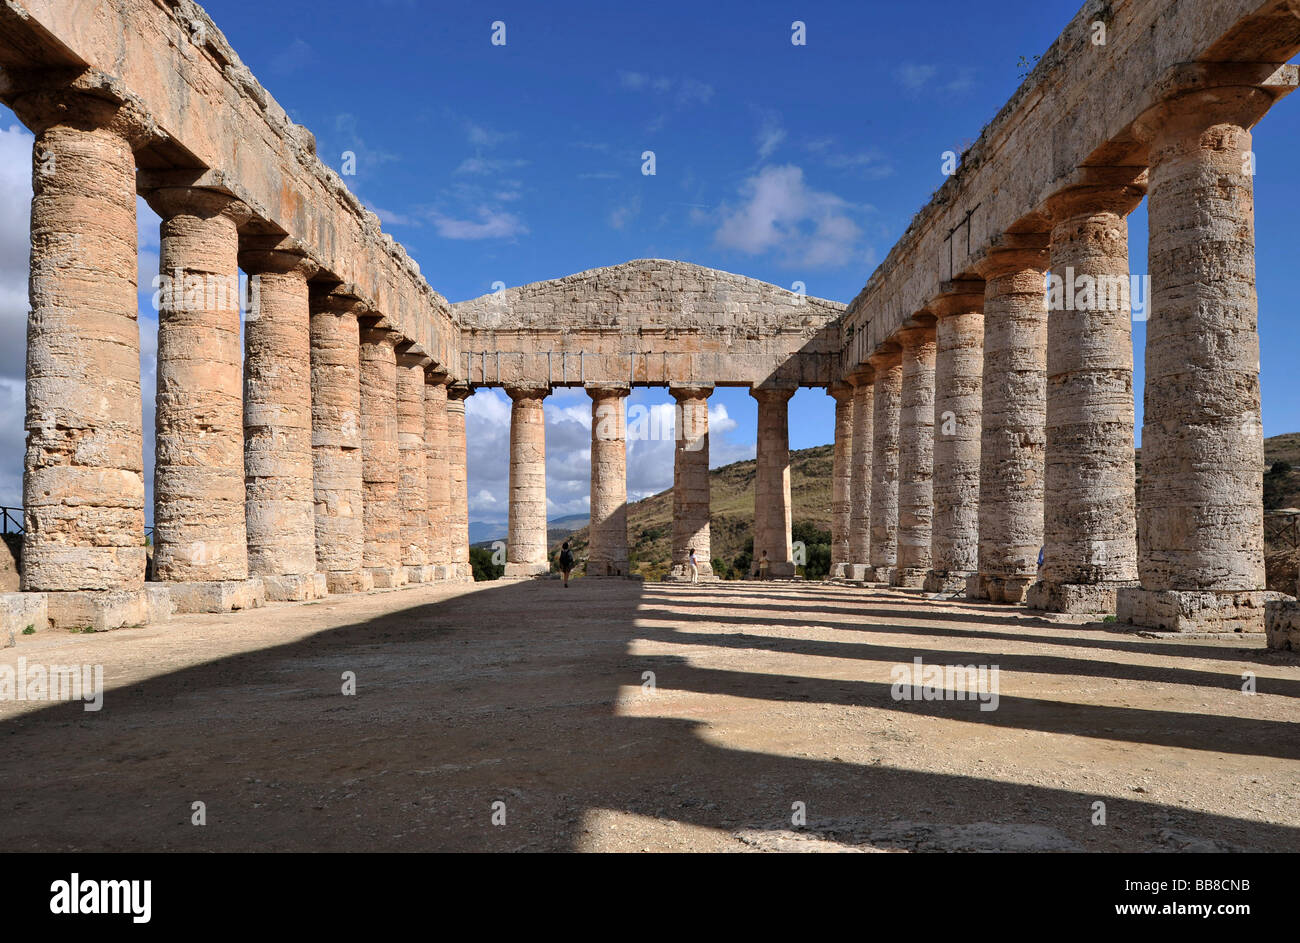 Tourist Sights In Sicily Imágenes De Stock   Tourist Sights In ... 327455466ff